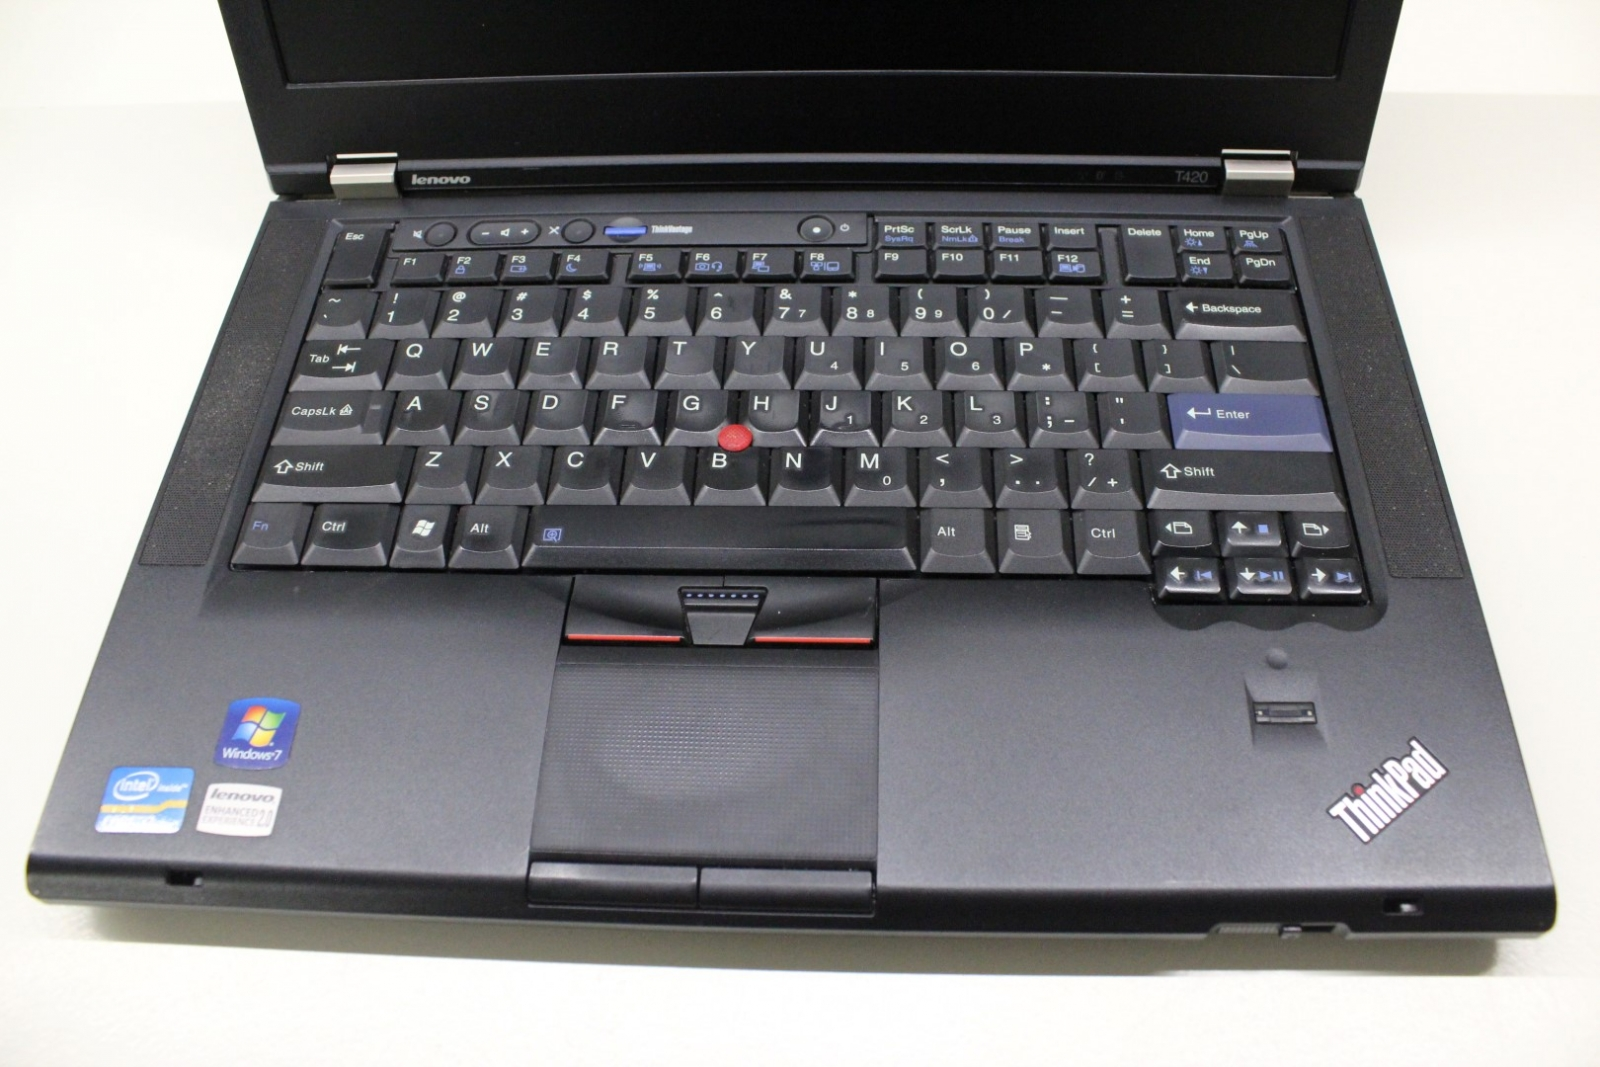 IBM Thinkpad T420 I5 Ram 4G Hdd 320G 14